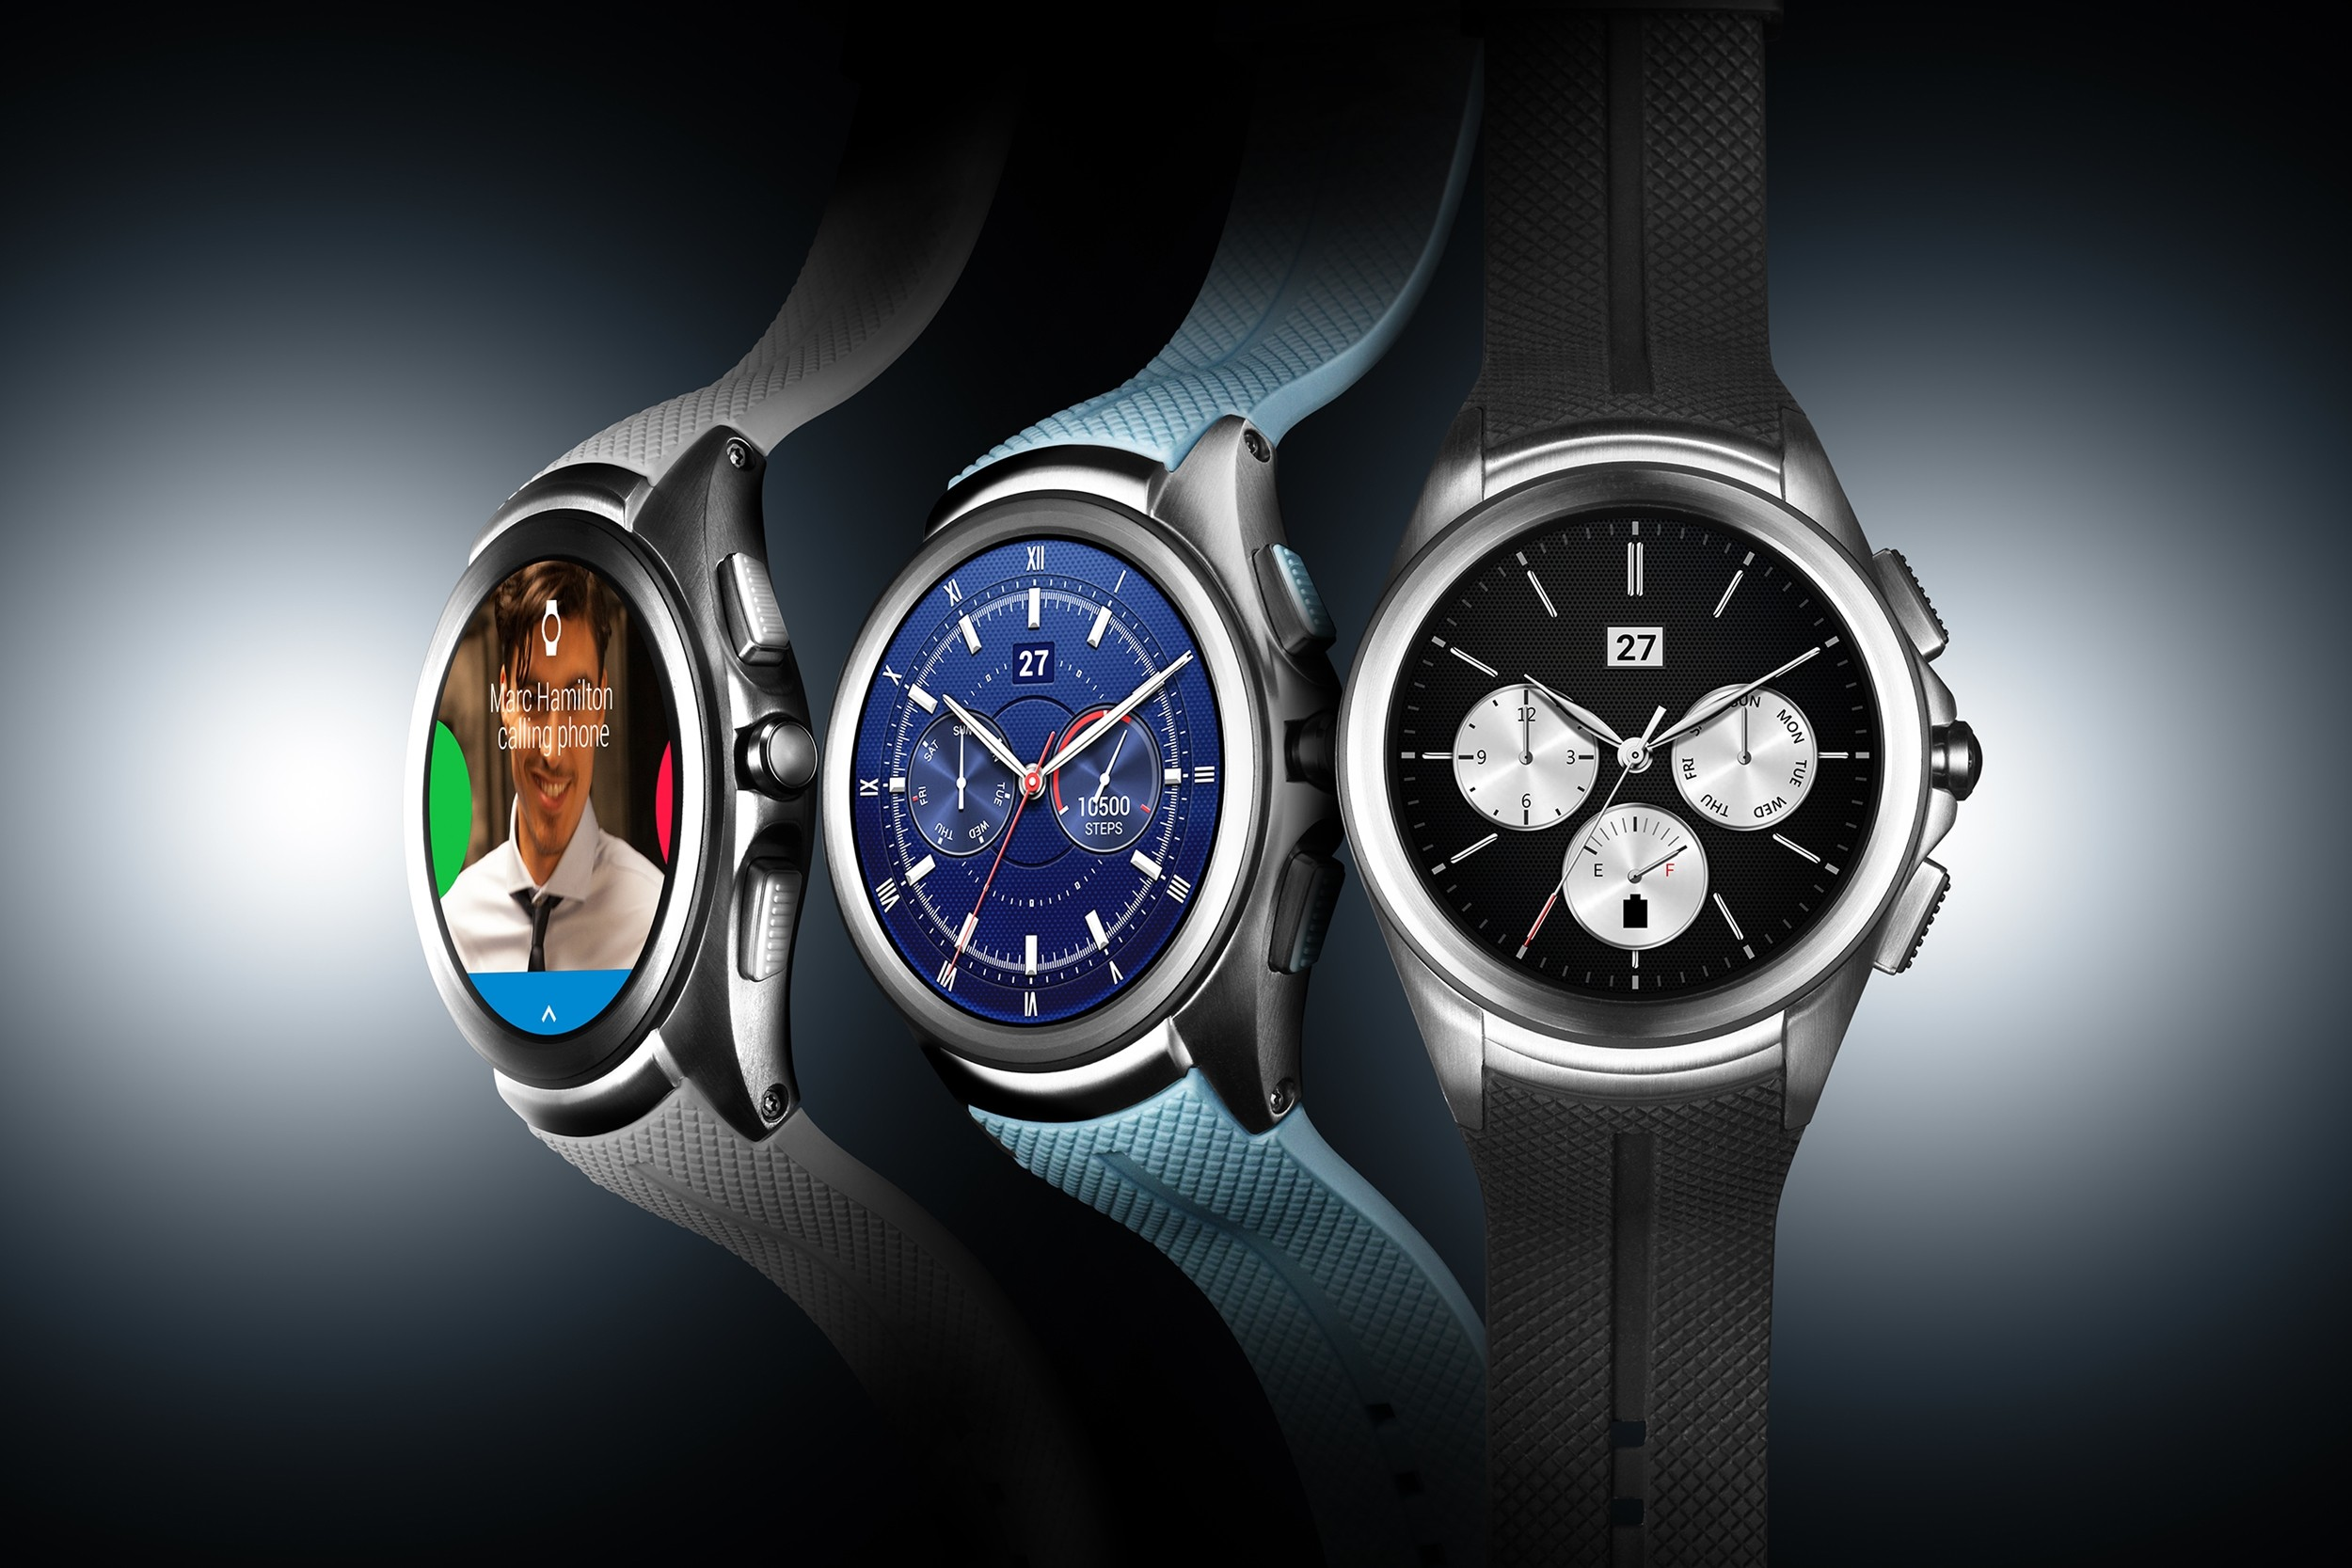 The front and side views of the LG Watch Urbane 2nd Edition in Space Black and Opal Blue